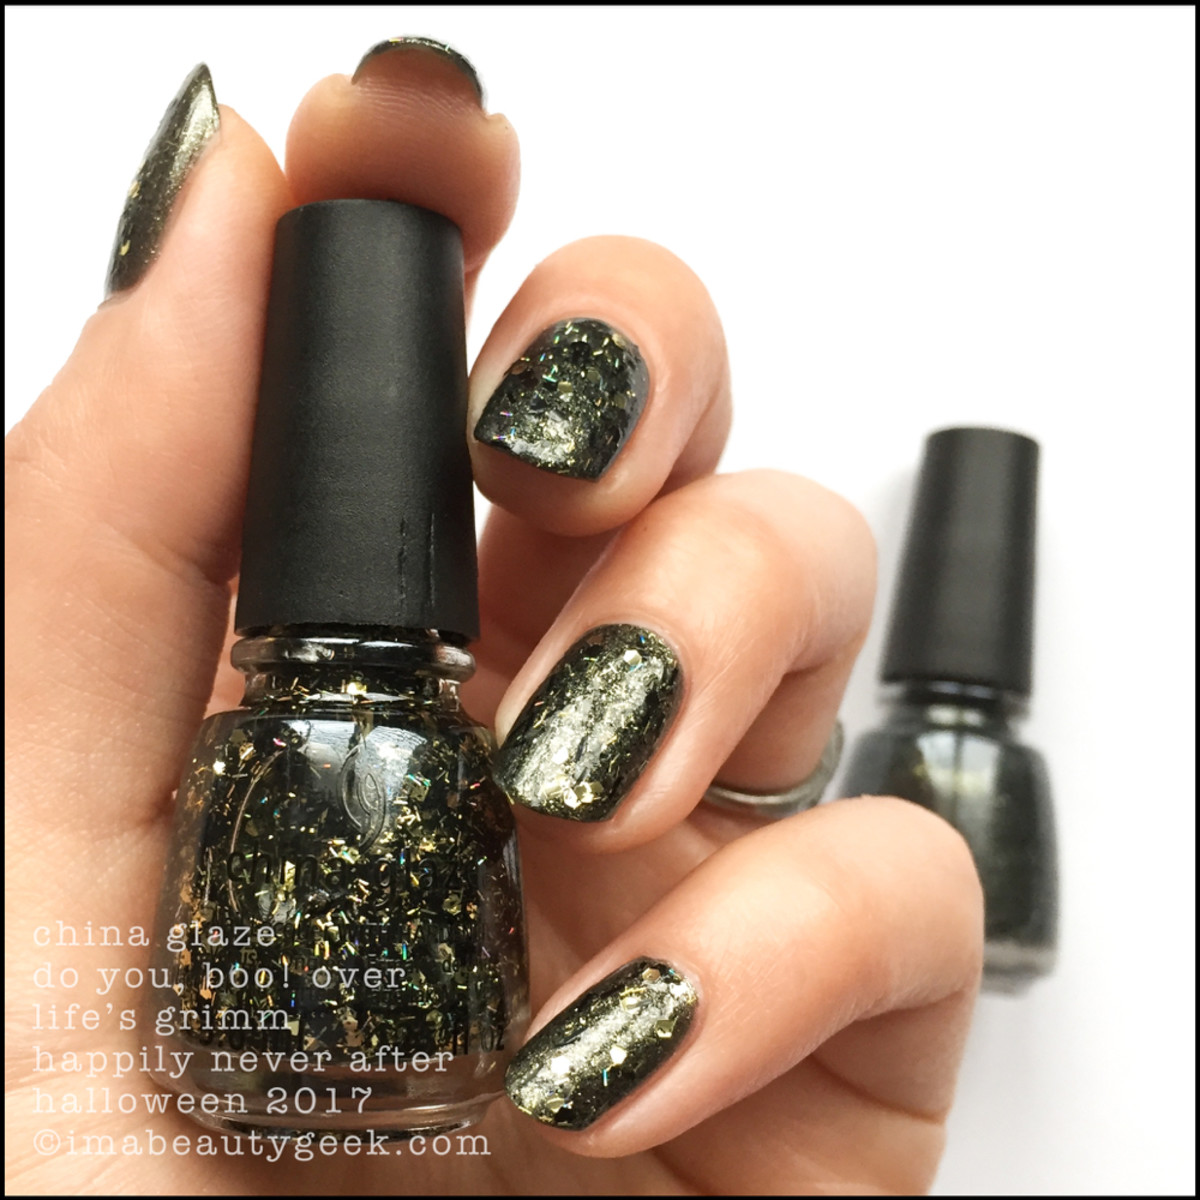 China Glaze Do You, Boo! over Life's Grimm _ China Glaze Happily Never After Collection Halloween 2017